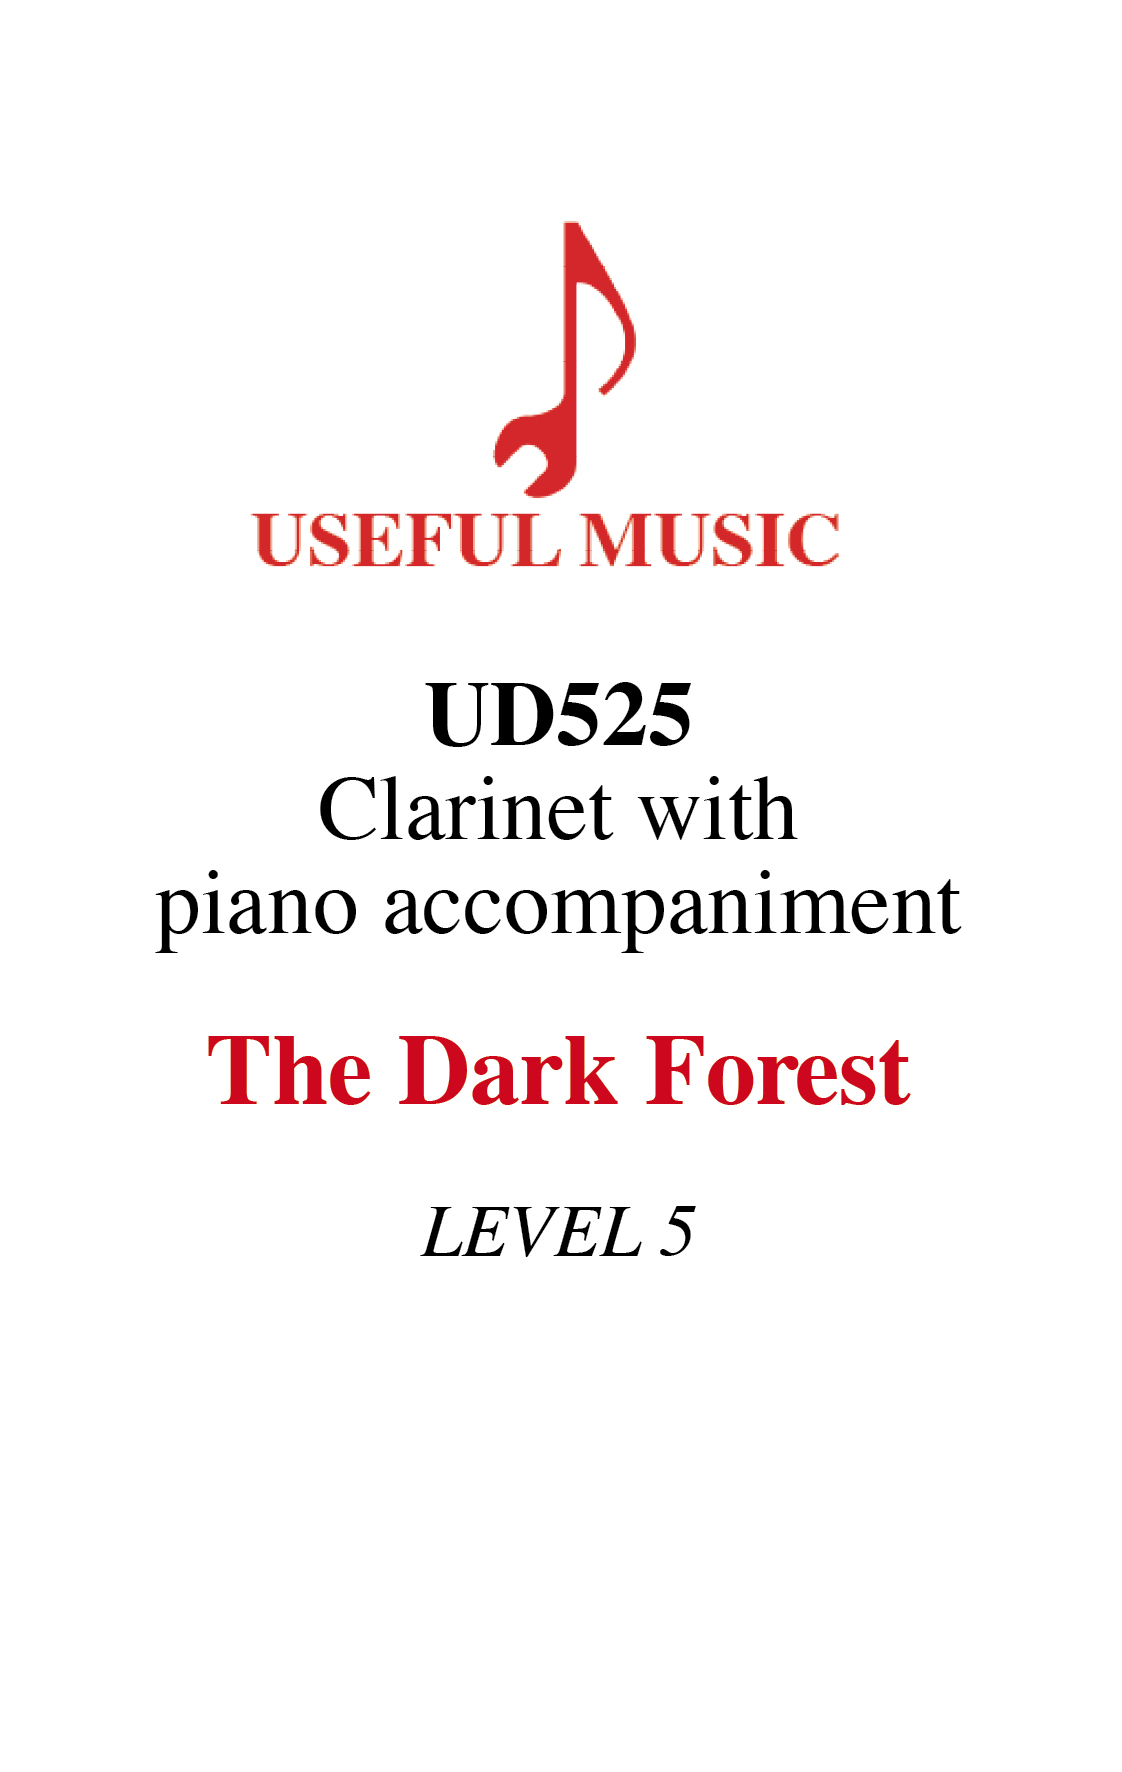 The Dark Forest - Clarinet with piano accompaniment